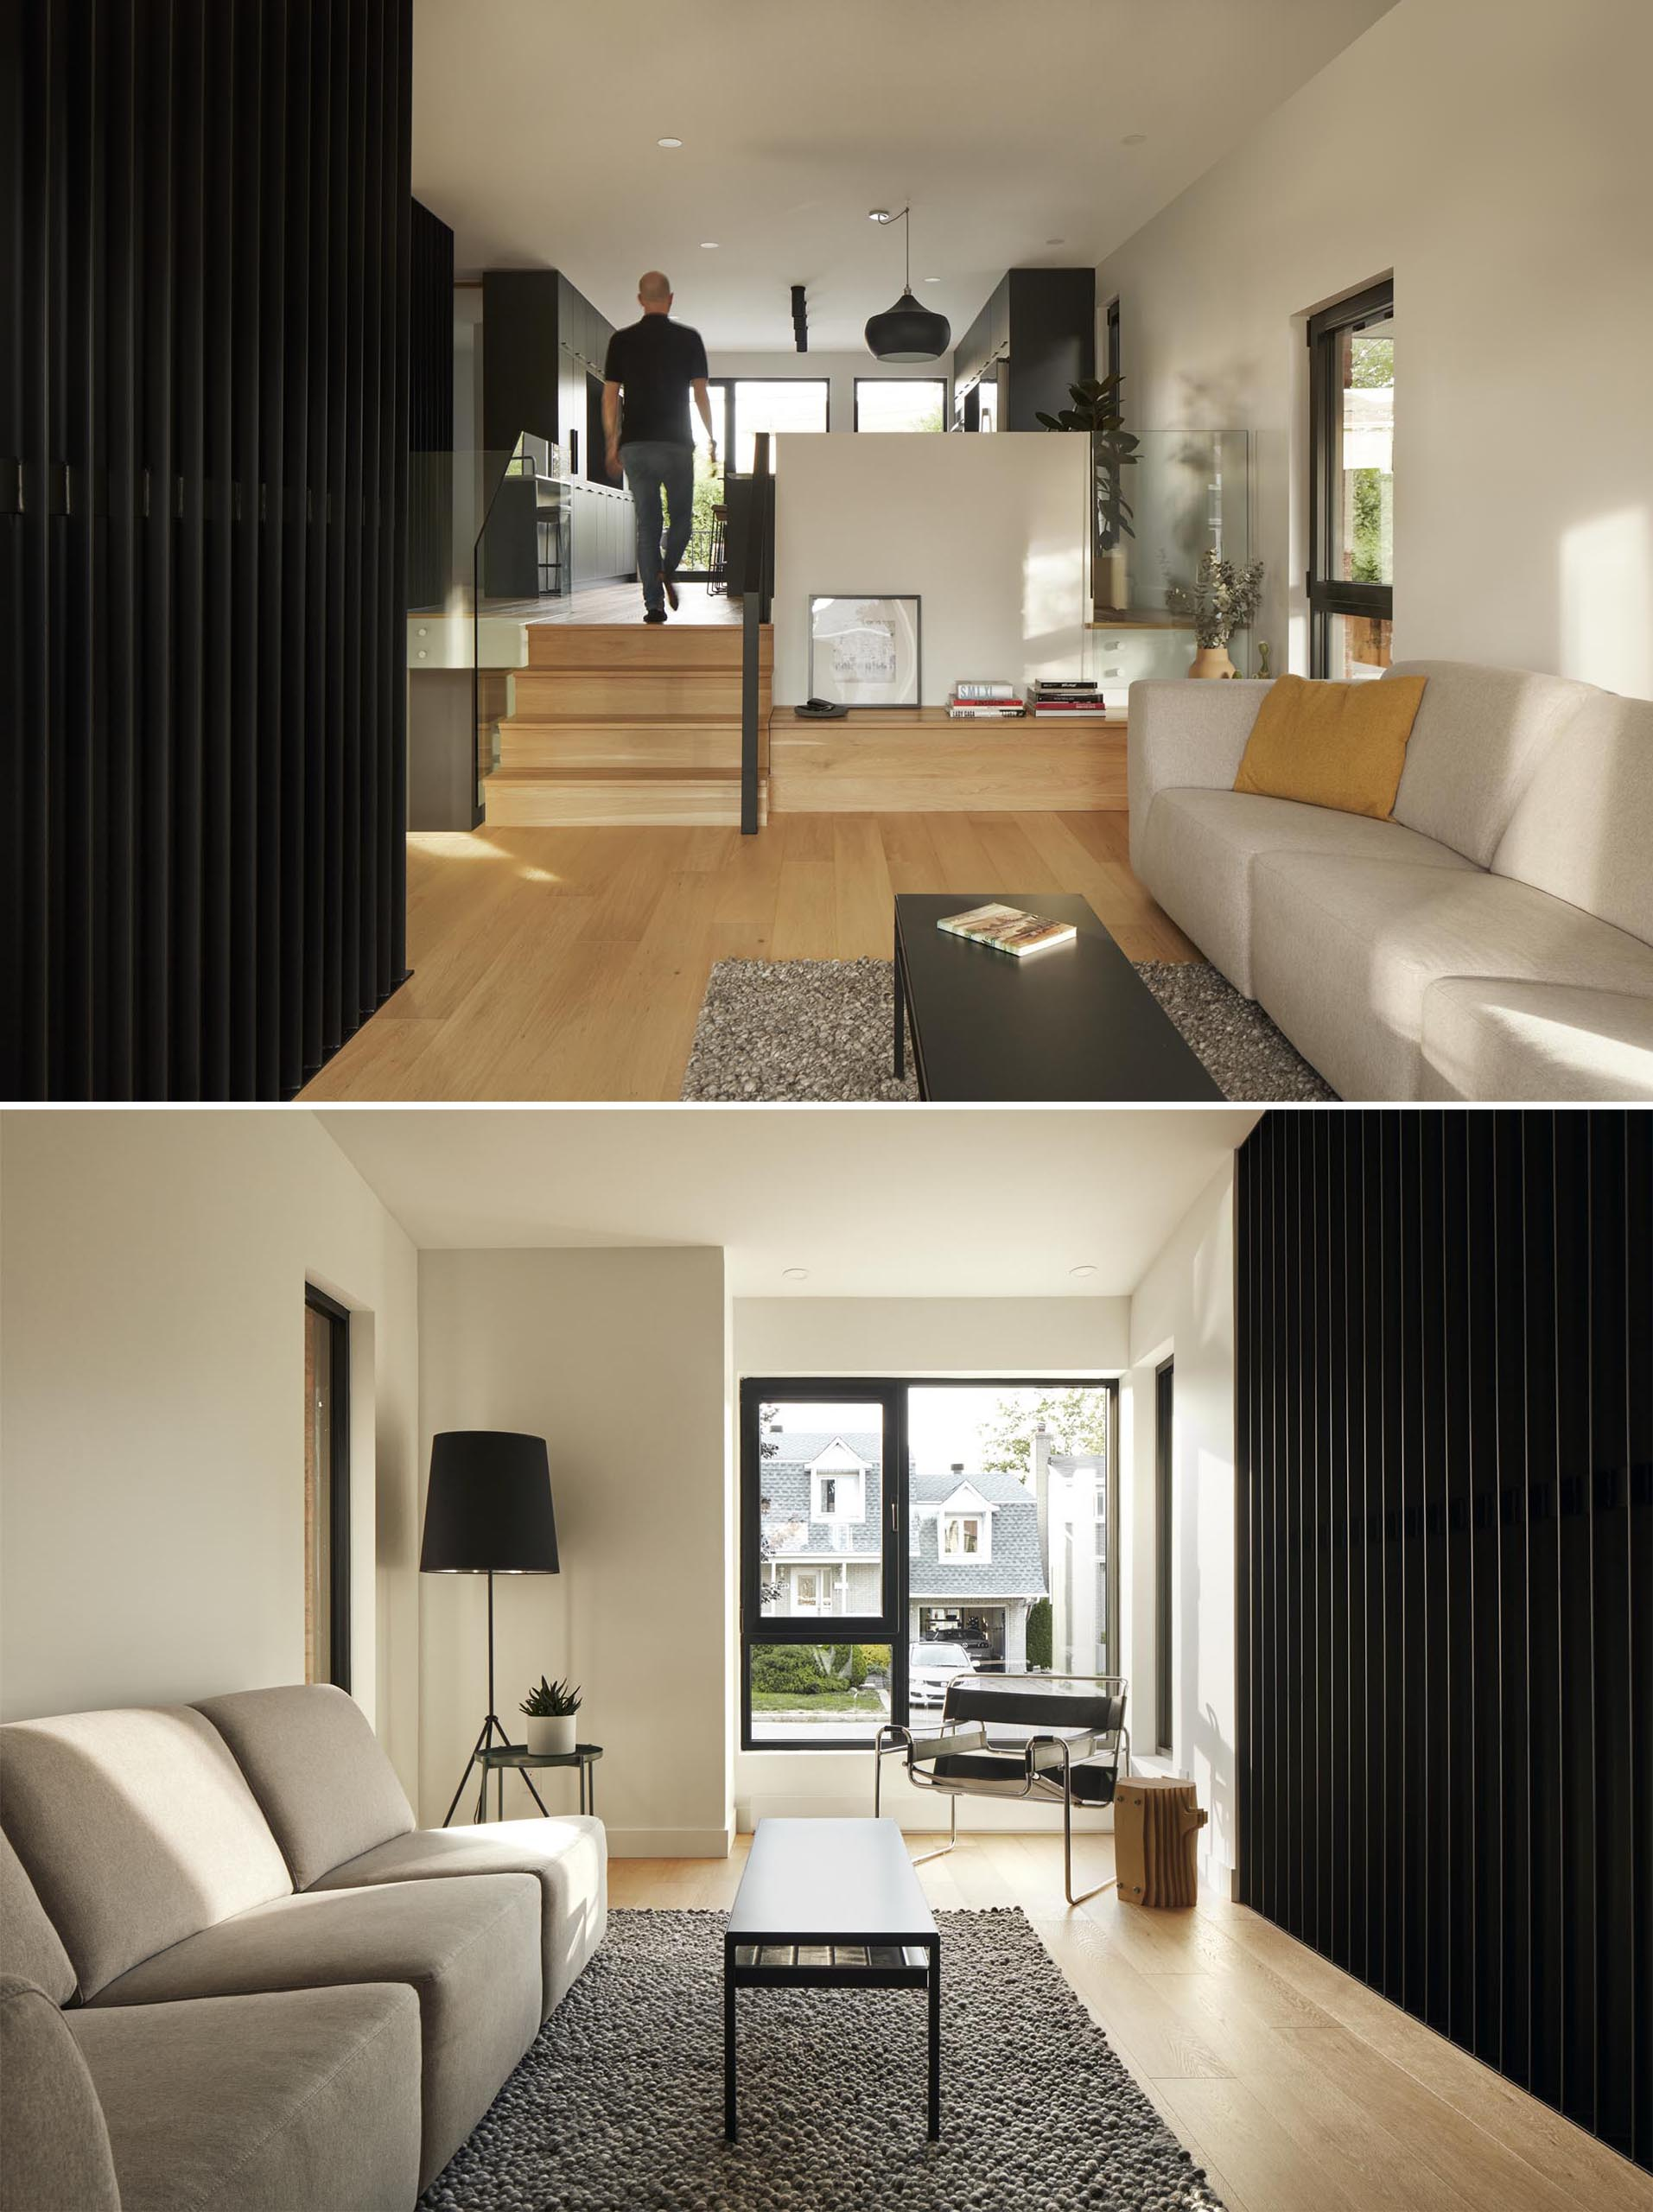 This modern living room has contemporary furnishings, and a view of the entryway and the street.